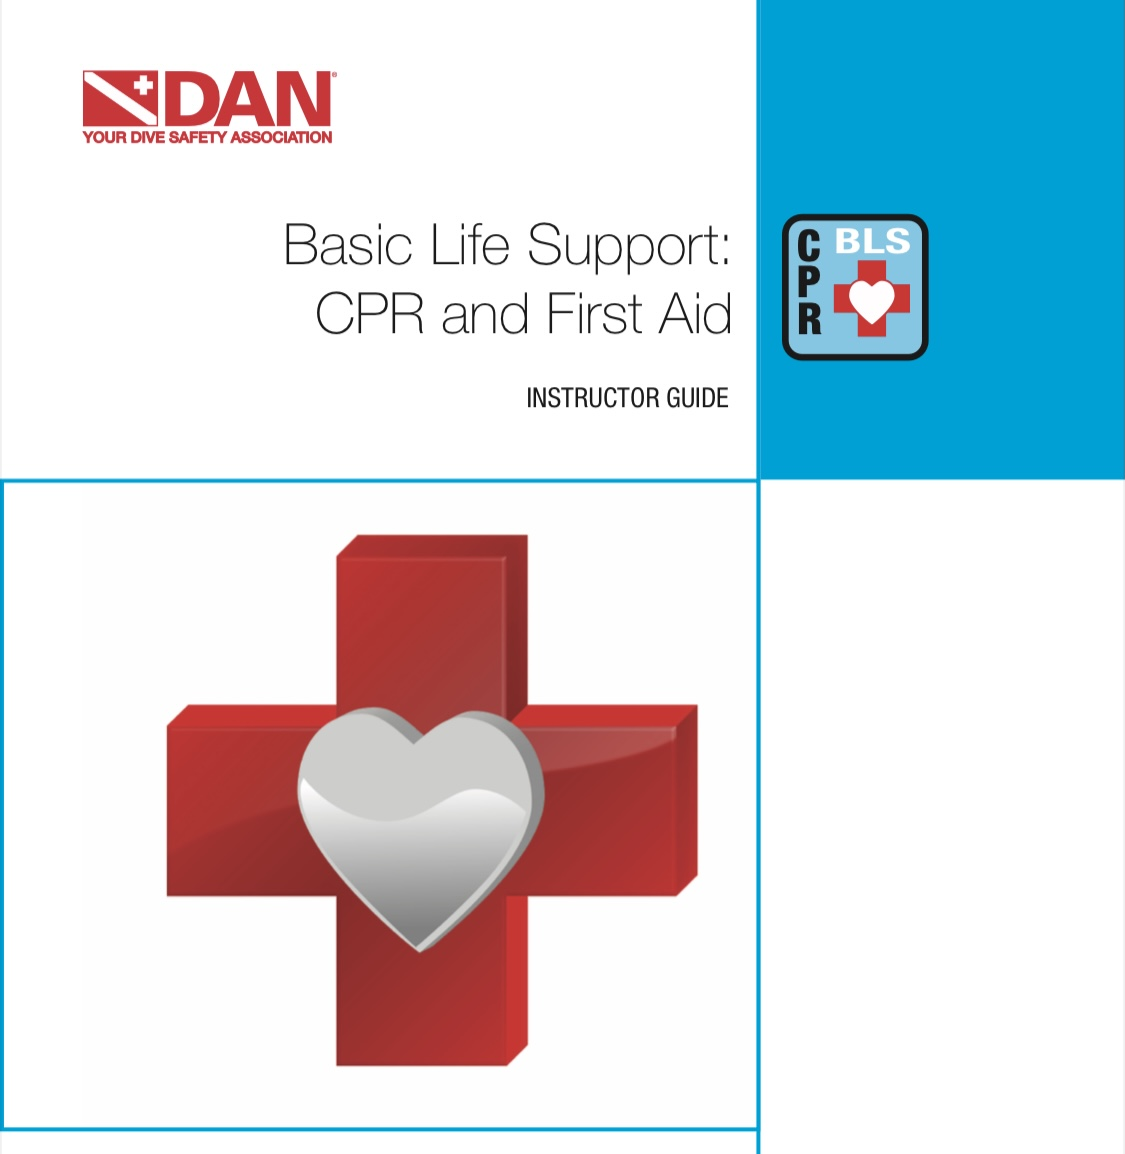 DAN Basic Life Support CPR and First Aid